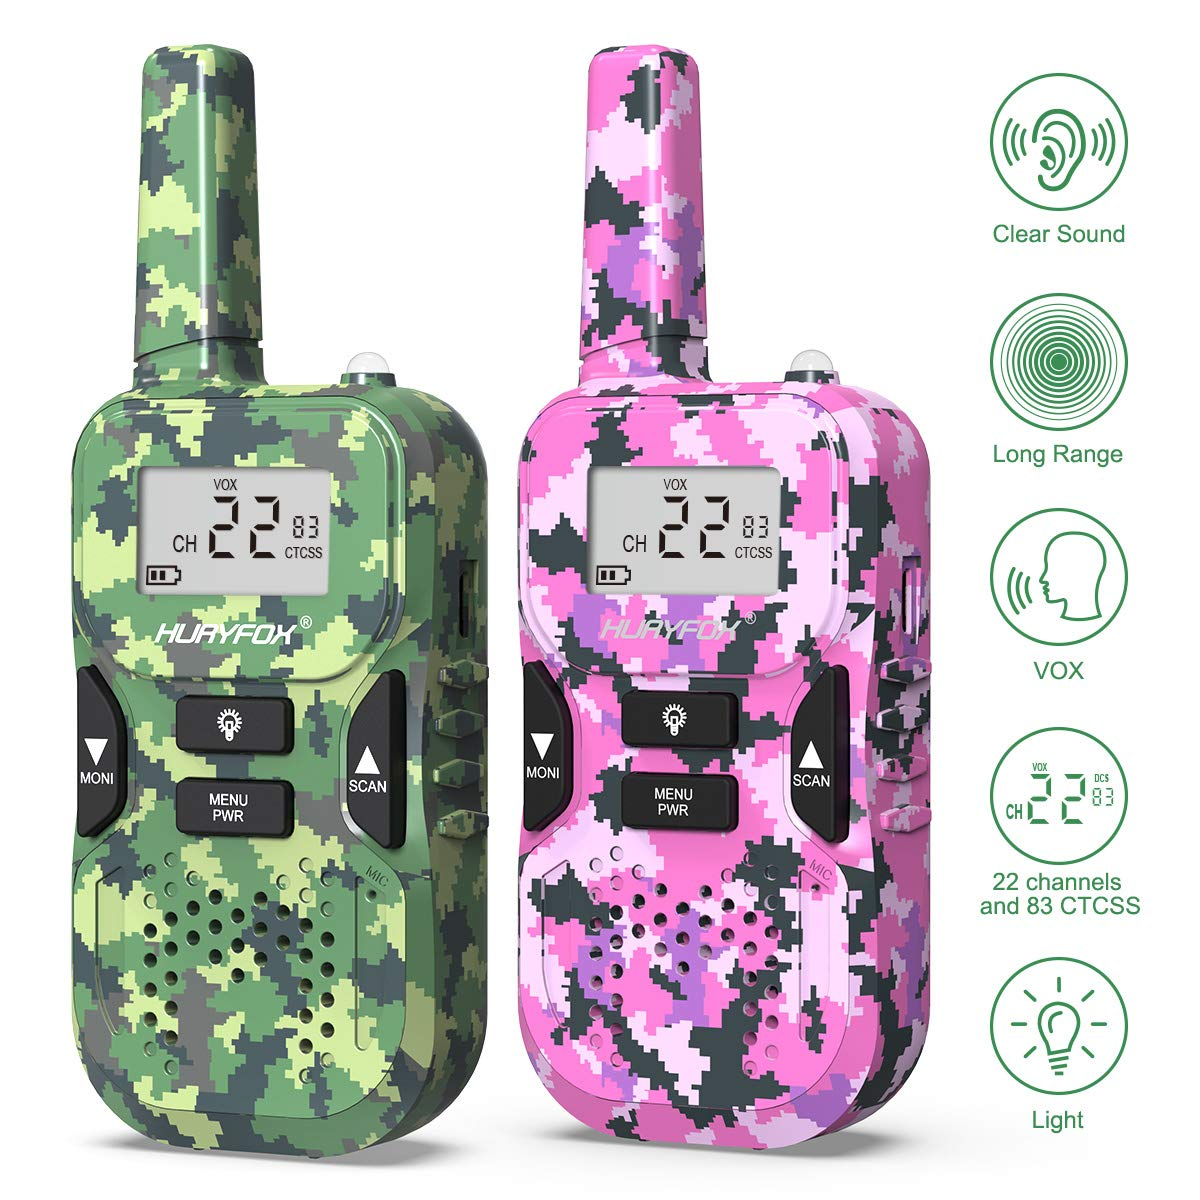 Walkie Talkie for Kids- Two Way Radio Toys with 22 Channels 83 Privacy Codes-Rechargeable Long Range Walky Talky with VOX Function for Camping,Hiking, Outdoor Adventures (2 Pack,Camo&Pink)